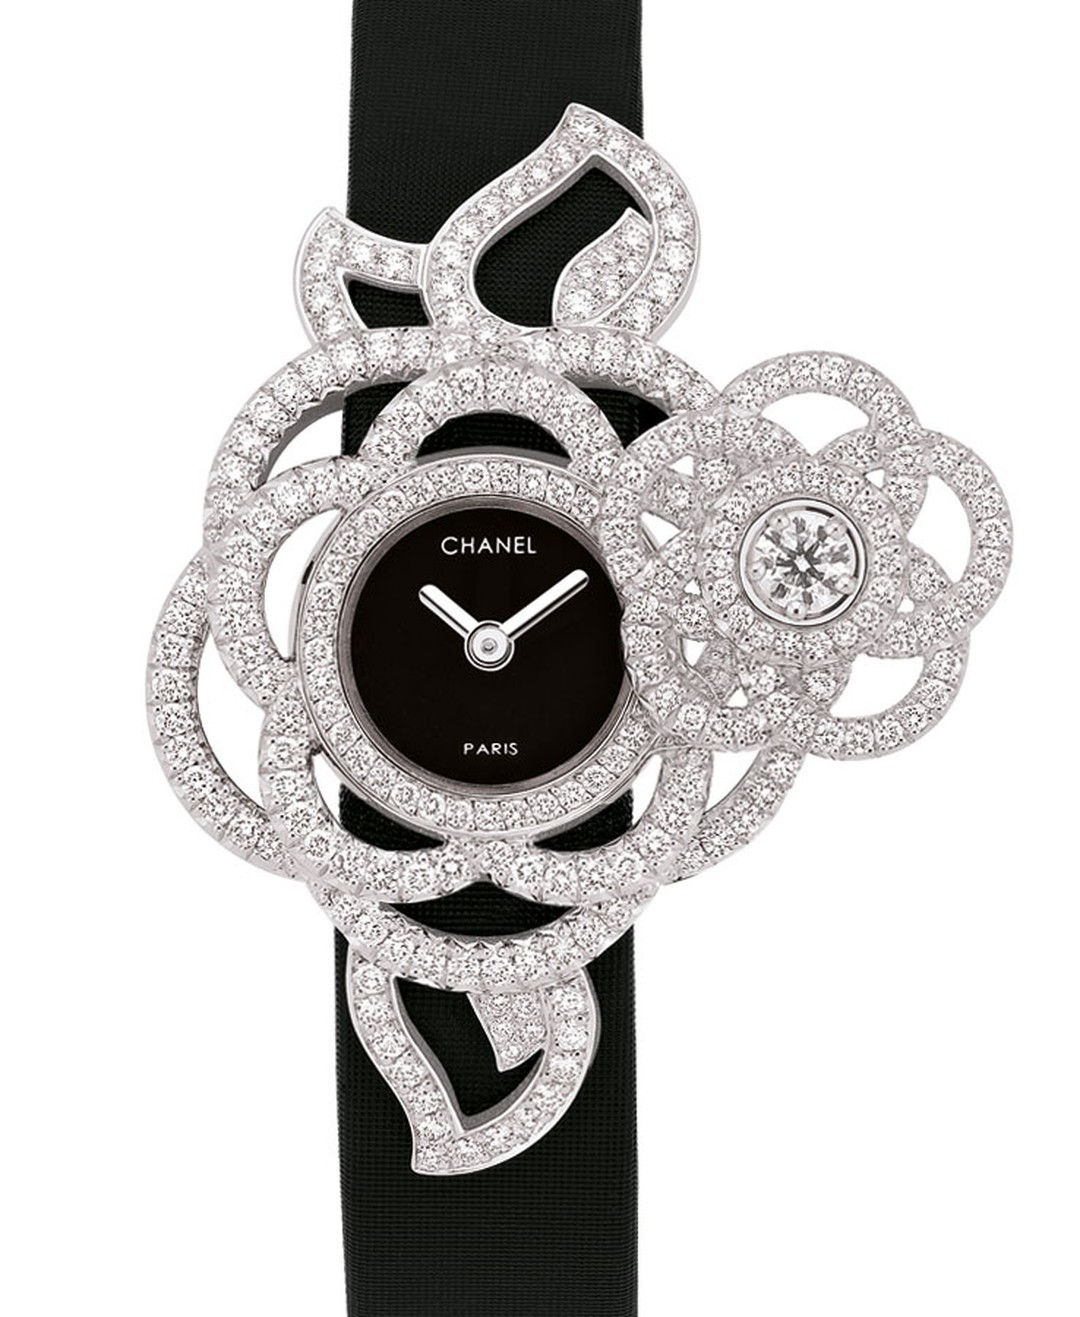 Chanel Came´lia Brode´ secret wtch in white gold and diamonds with black satin strap. Open